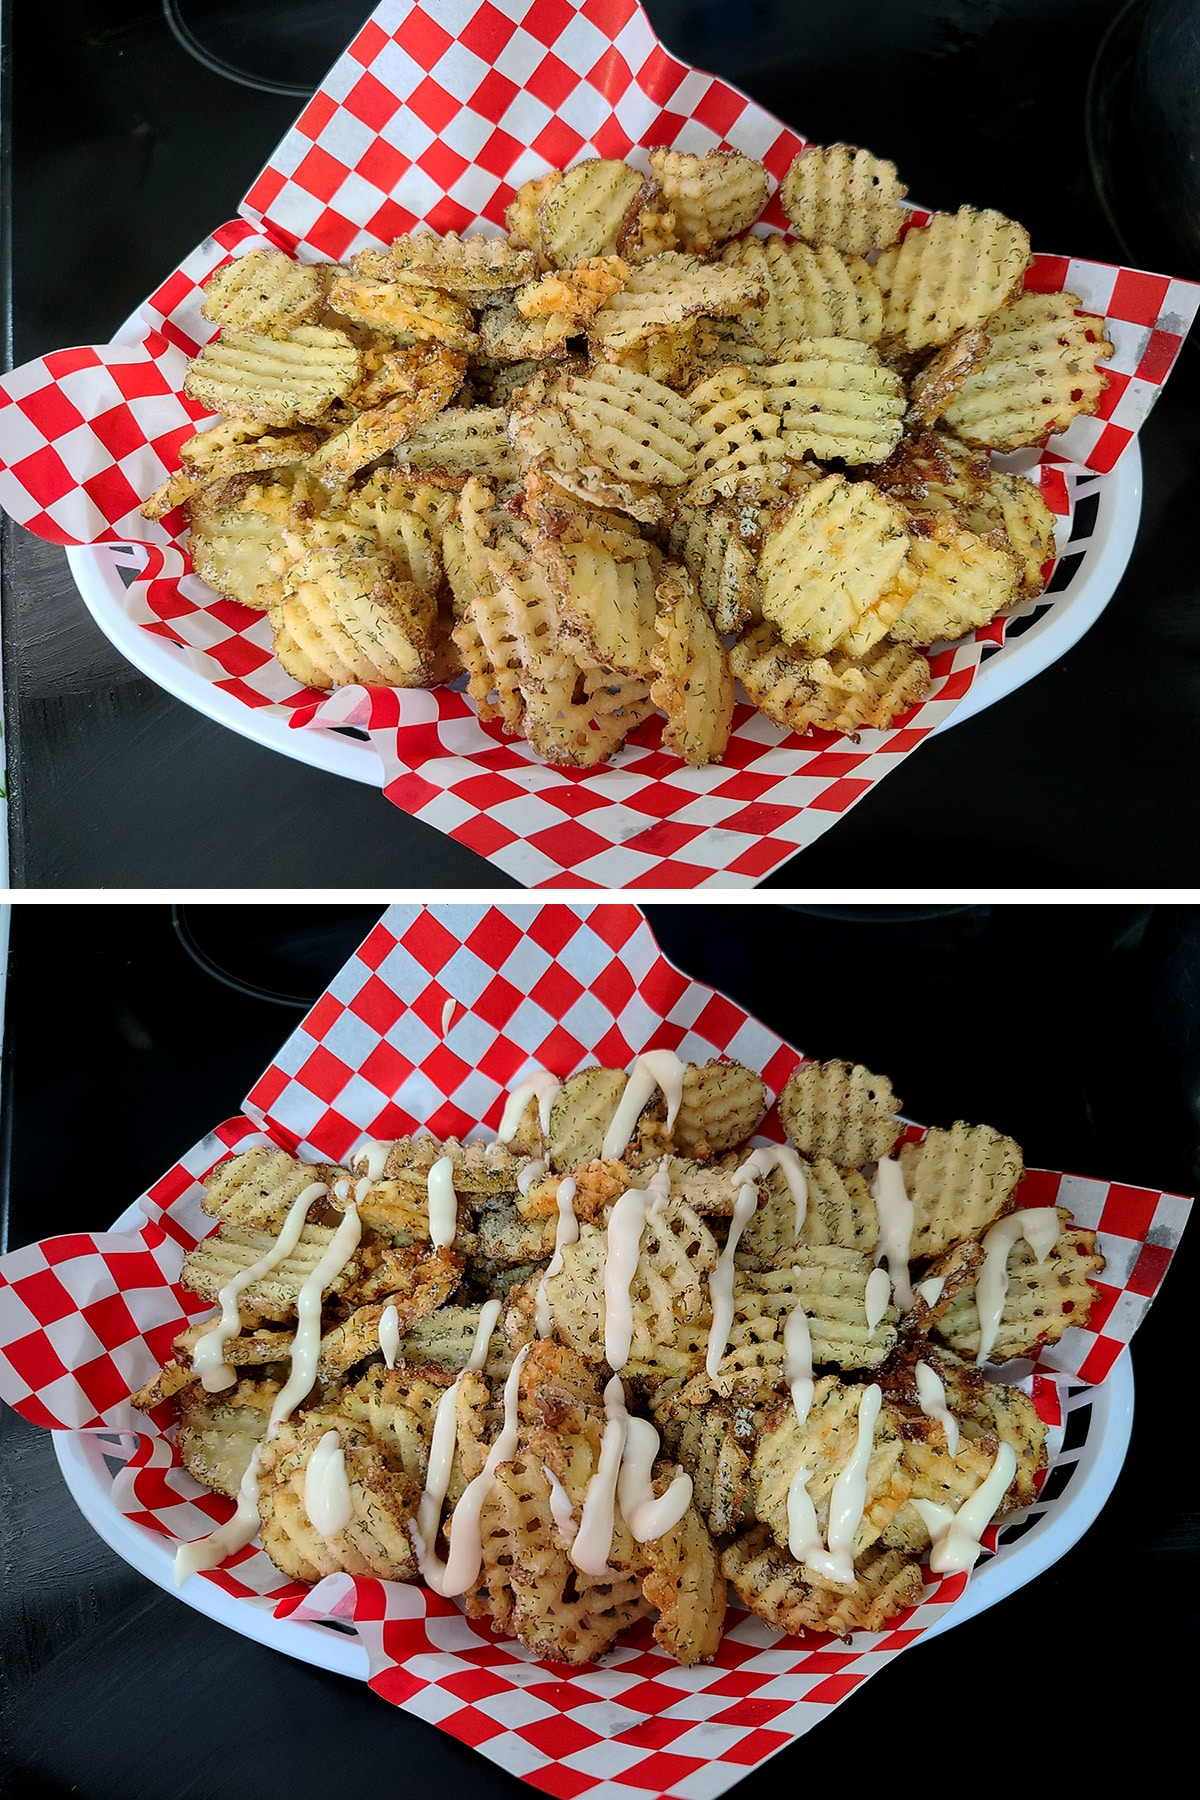 A two part compilation image showing waffle fries in a basket lined with red and white checkerboard paper. In the second image, the fries have been drizzled with roasted garlic aioli.